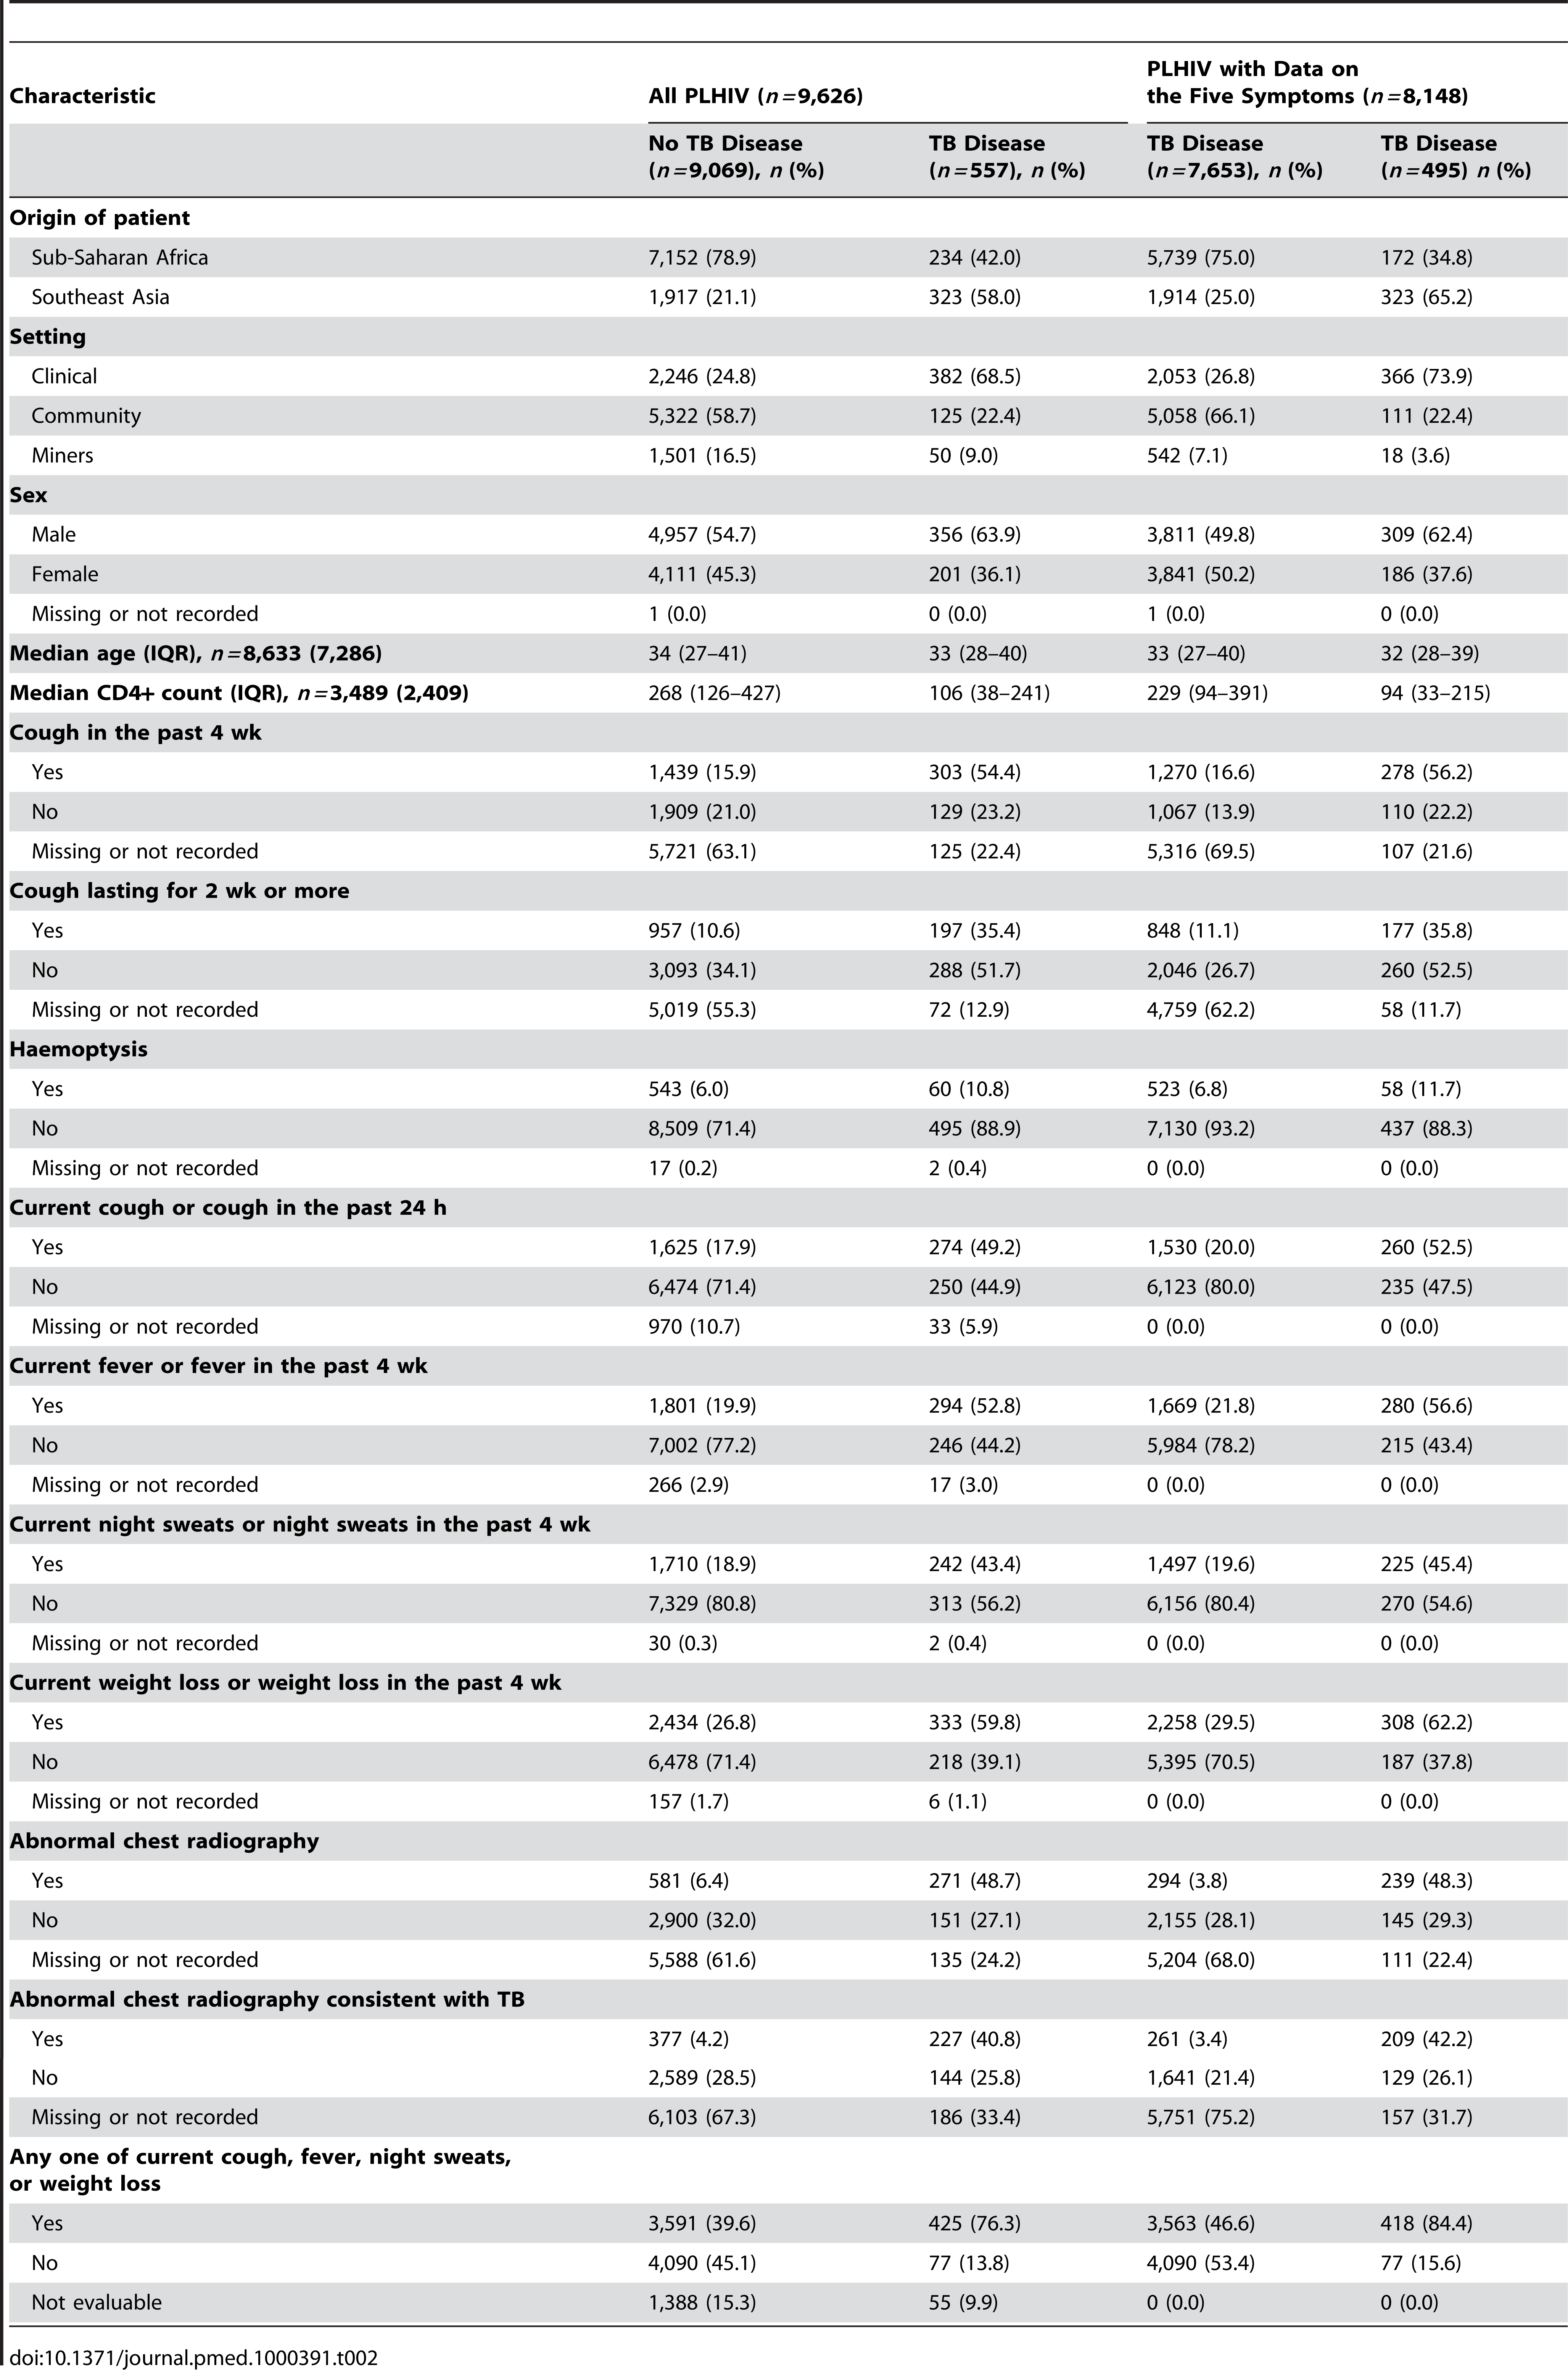 Characteristics of participants with and without TB for variables included in the analysis.